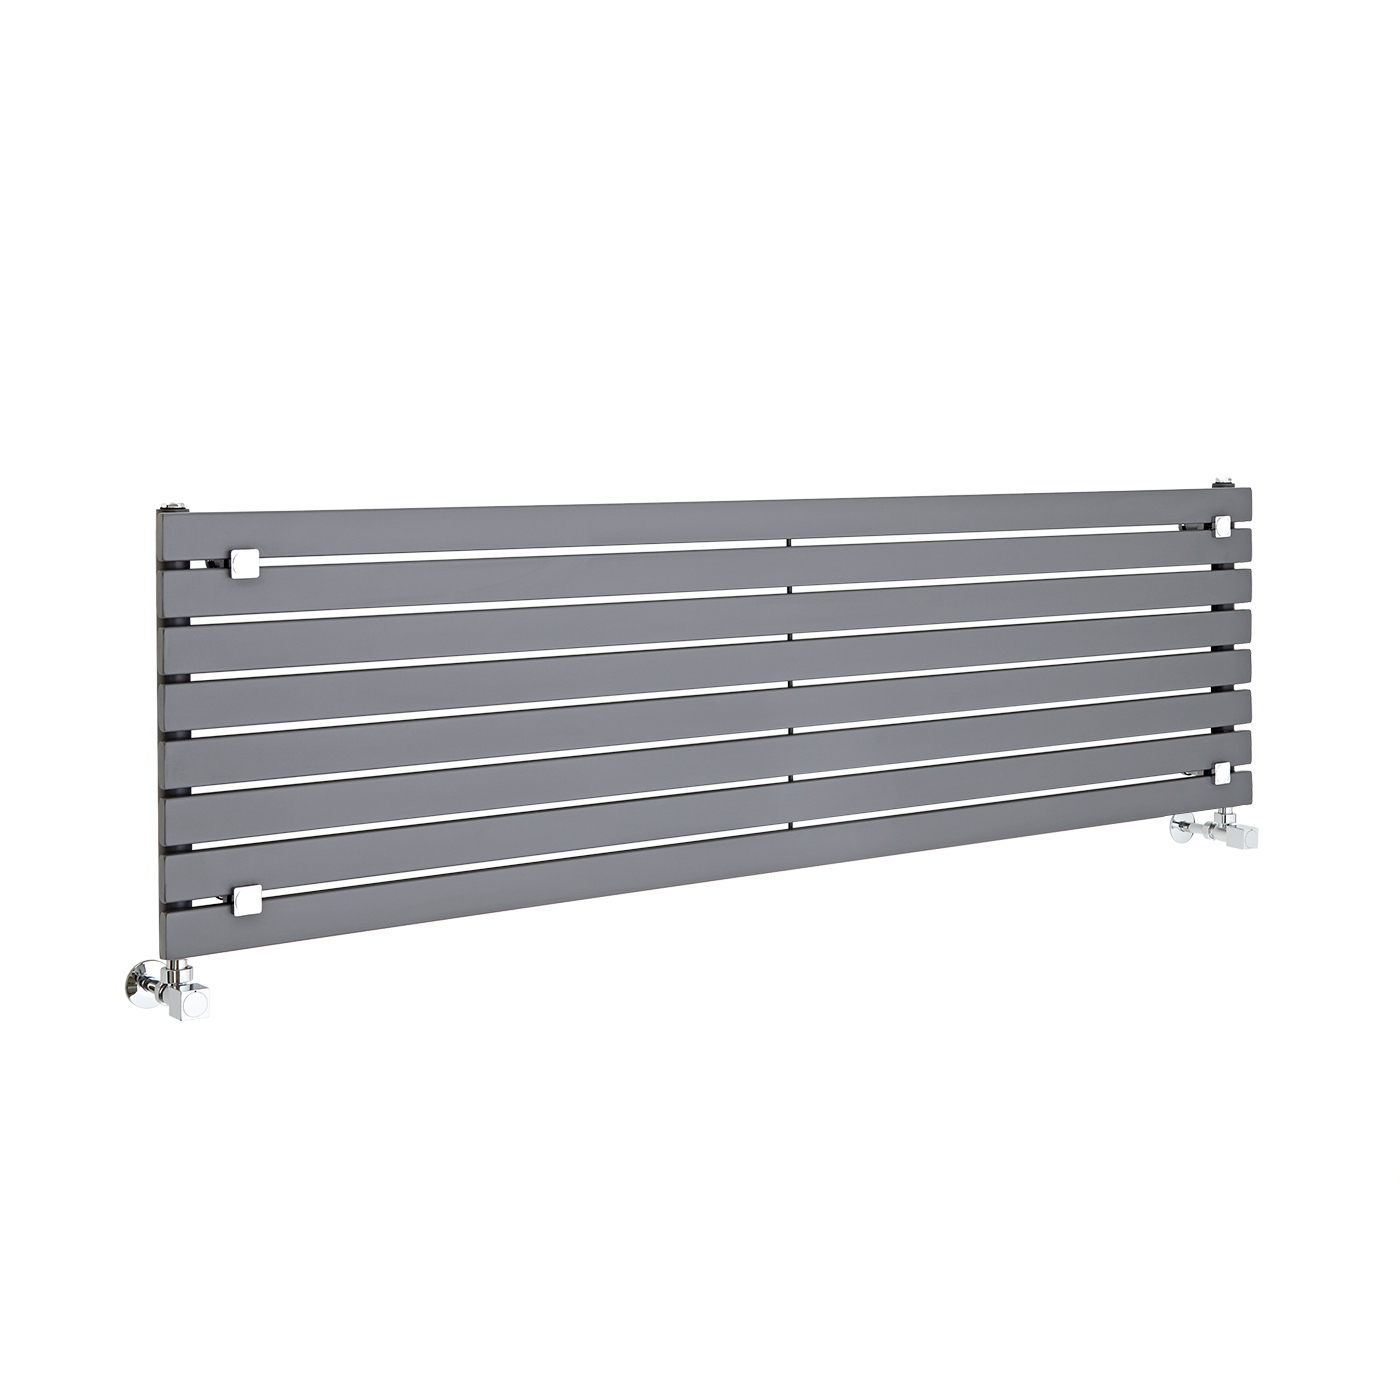 Radiateur Design Horizontal Anthracite Sloane 47,2cm x 160cm x 5,4cm 1043 Watts